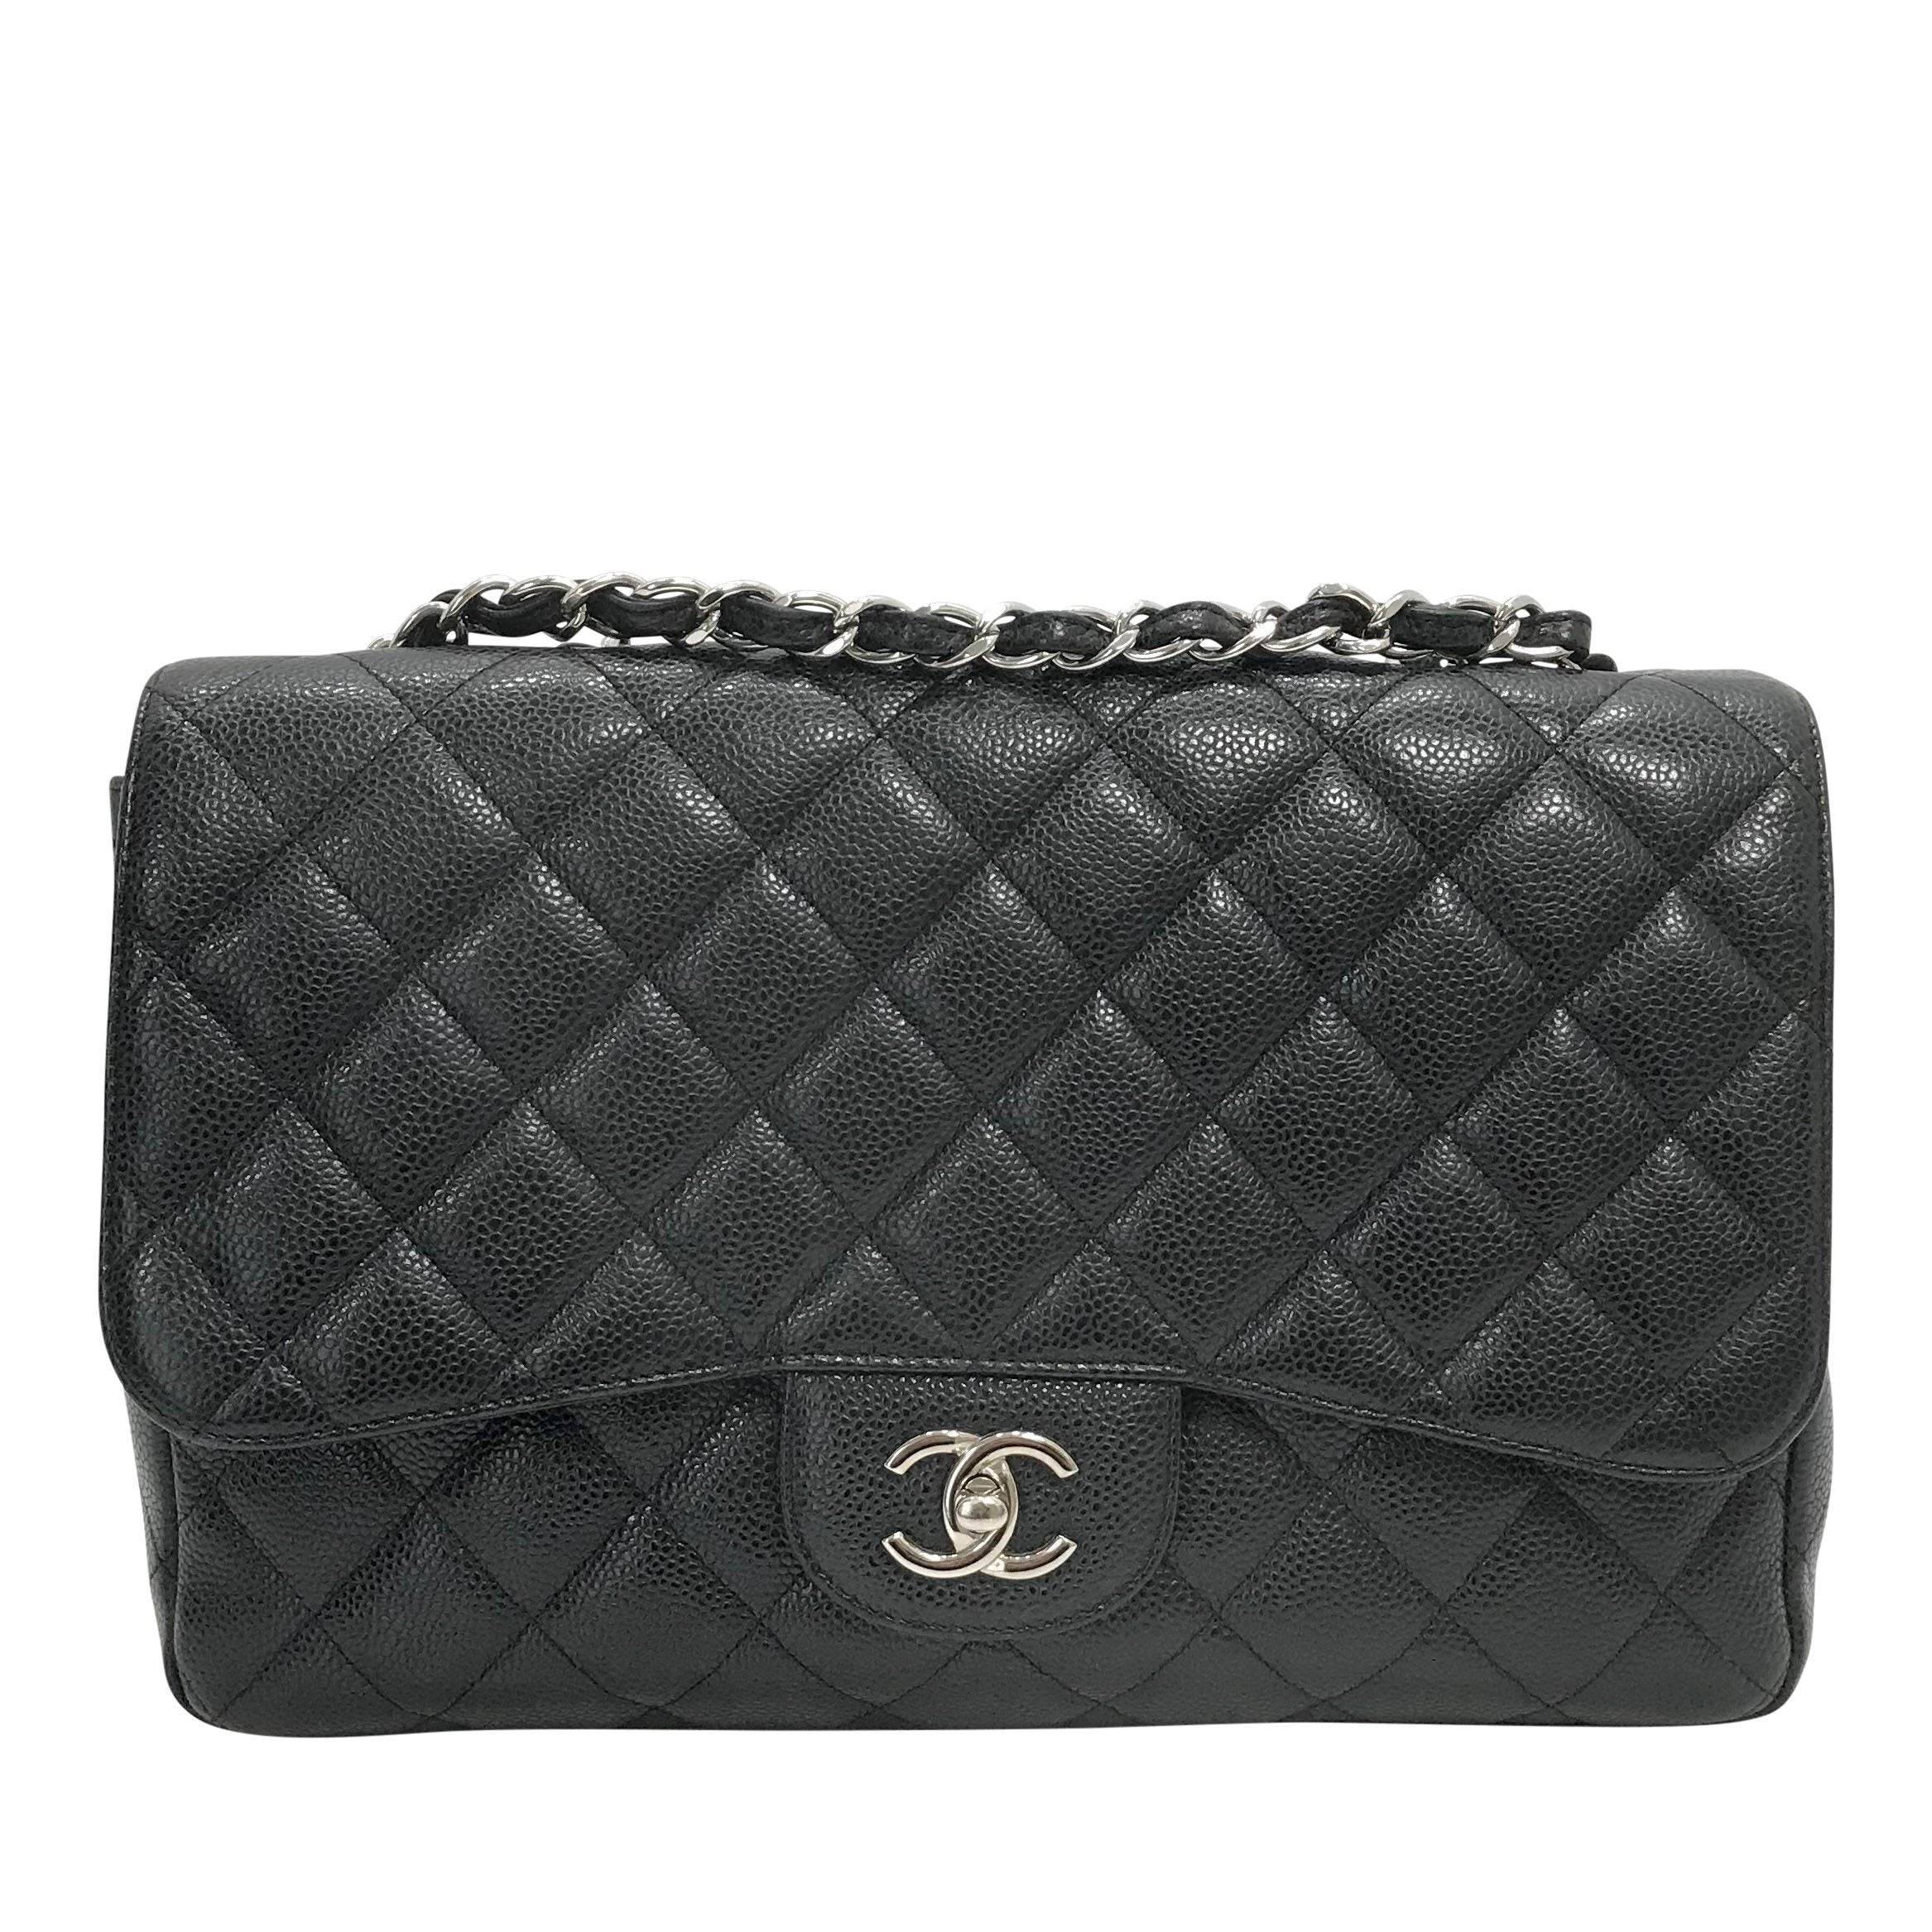 6152c9f936eb39 Chanel Black Caviar Classic Jumbo Single Flap Bag– Oliver Jewellery